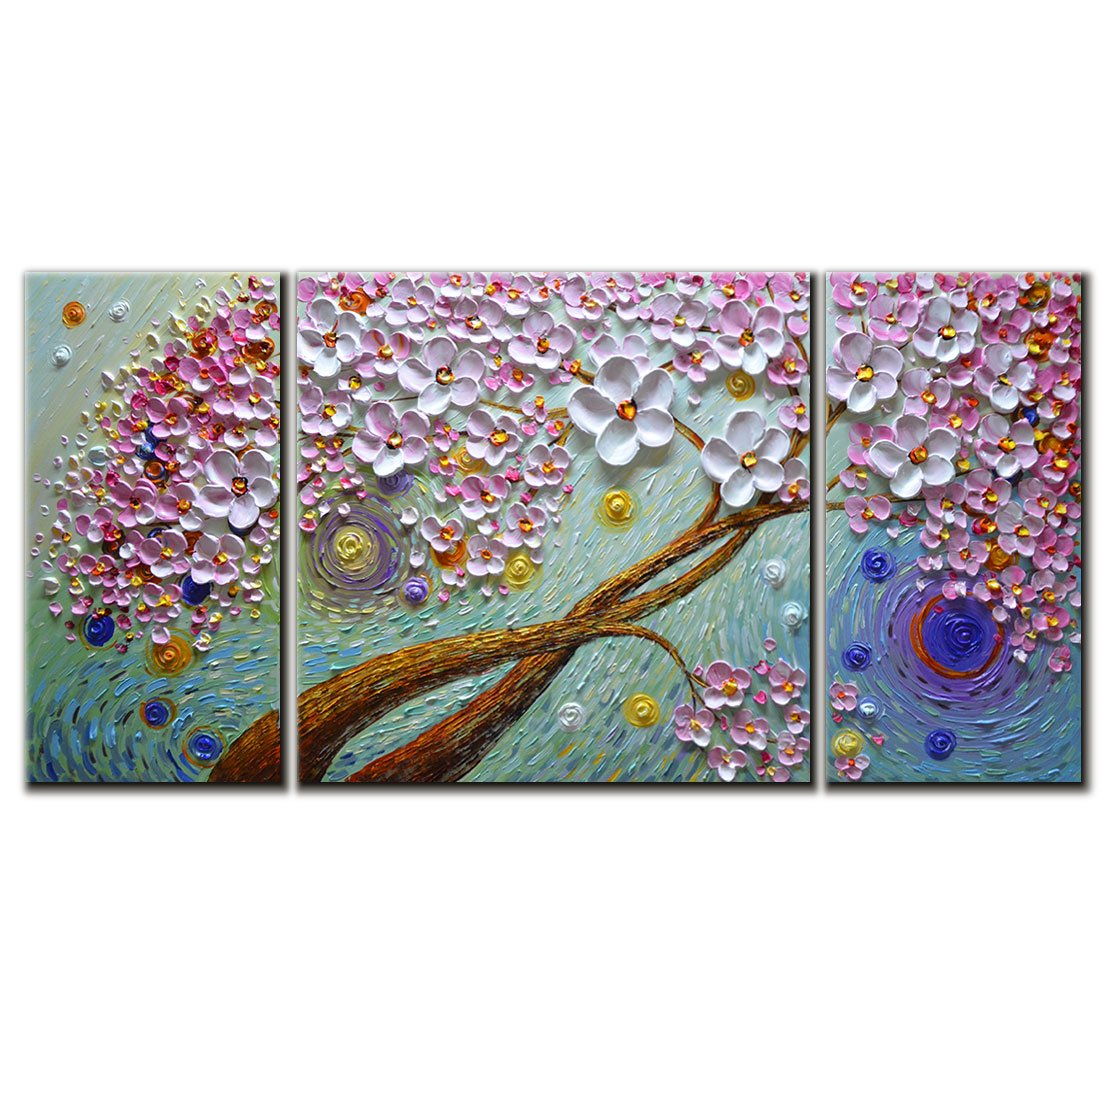 Amei Art Paintings, 36x72 Inch Paintings Modern Textured Purple Flower Oil Painting Contemporary Artwork Floral Hangings Stretched And Framed Ready to Hang Wall Decoration Abstract Painting